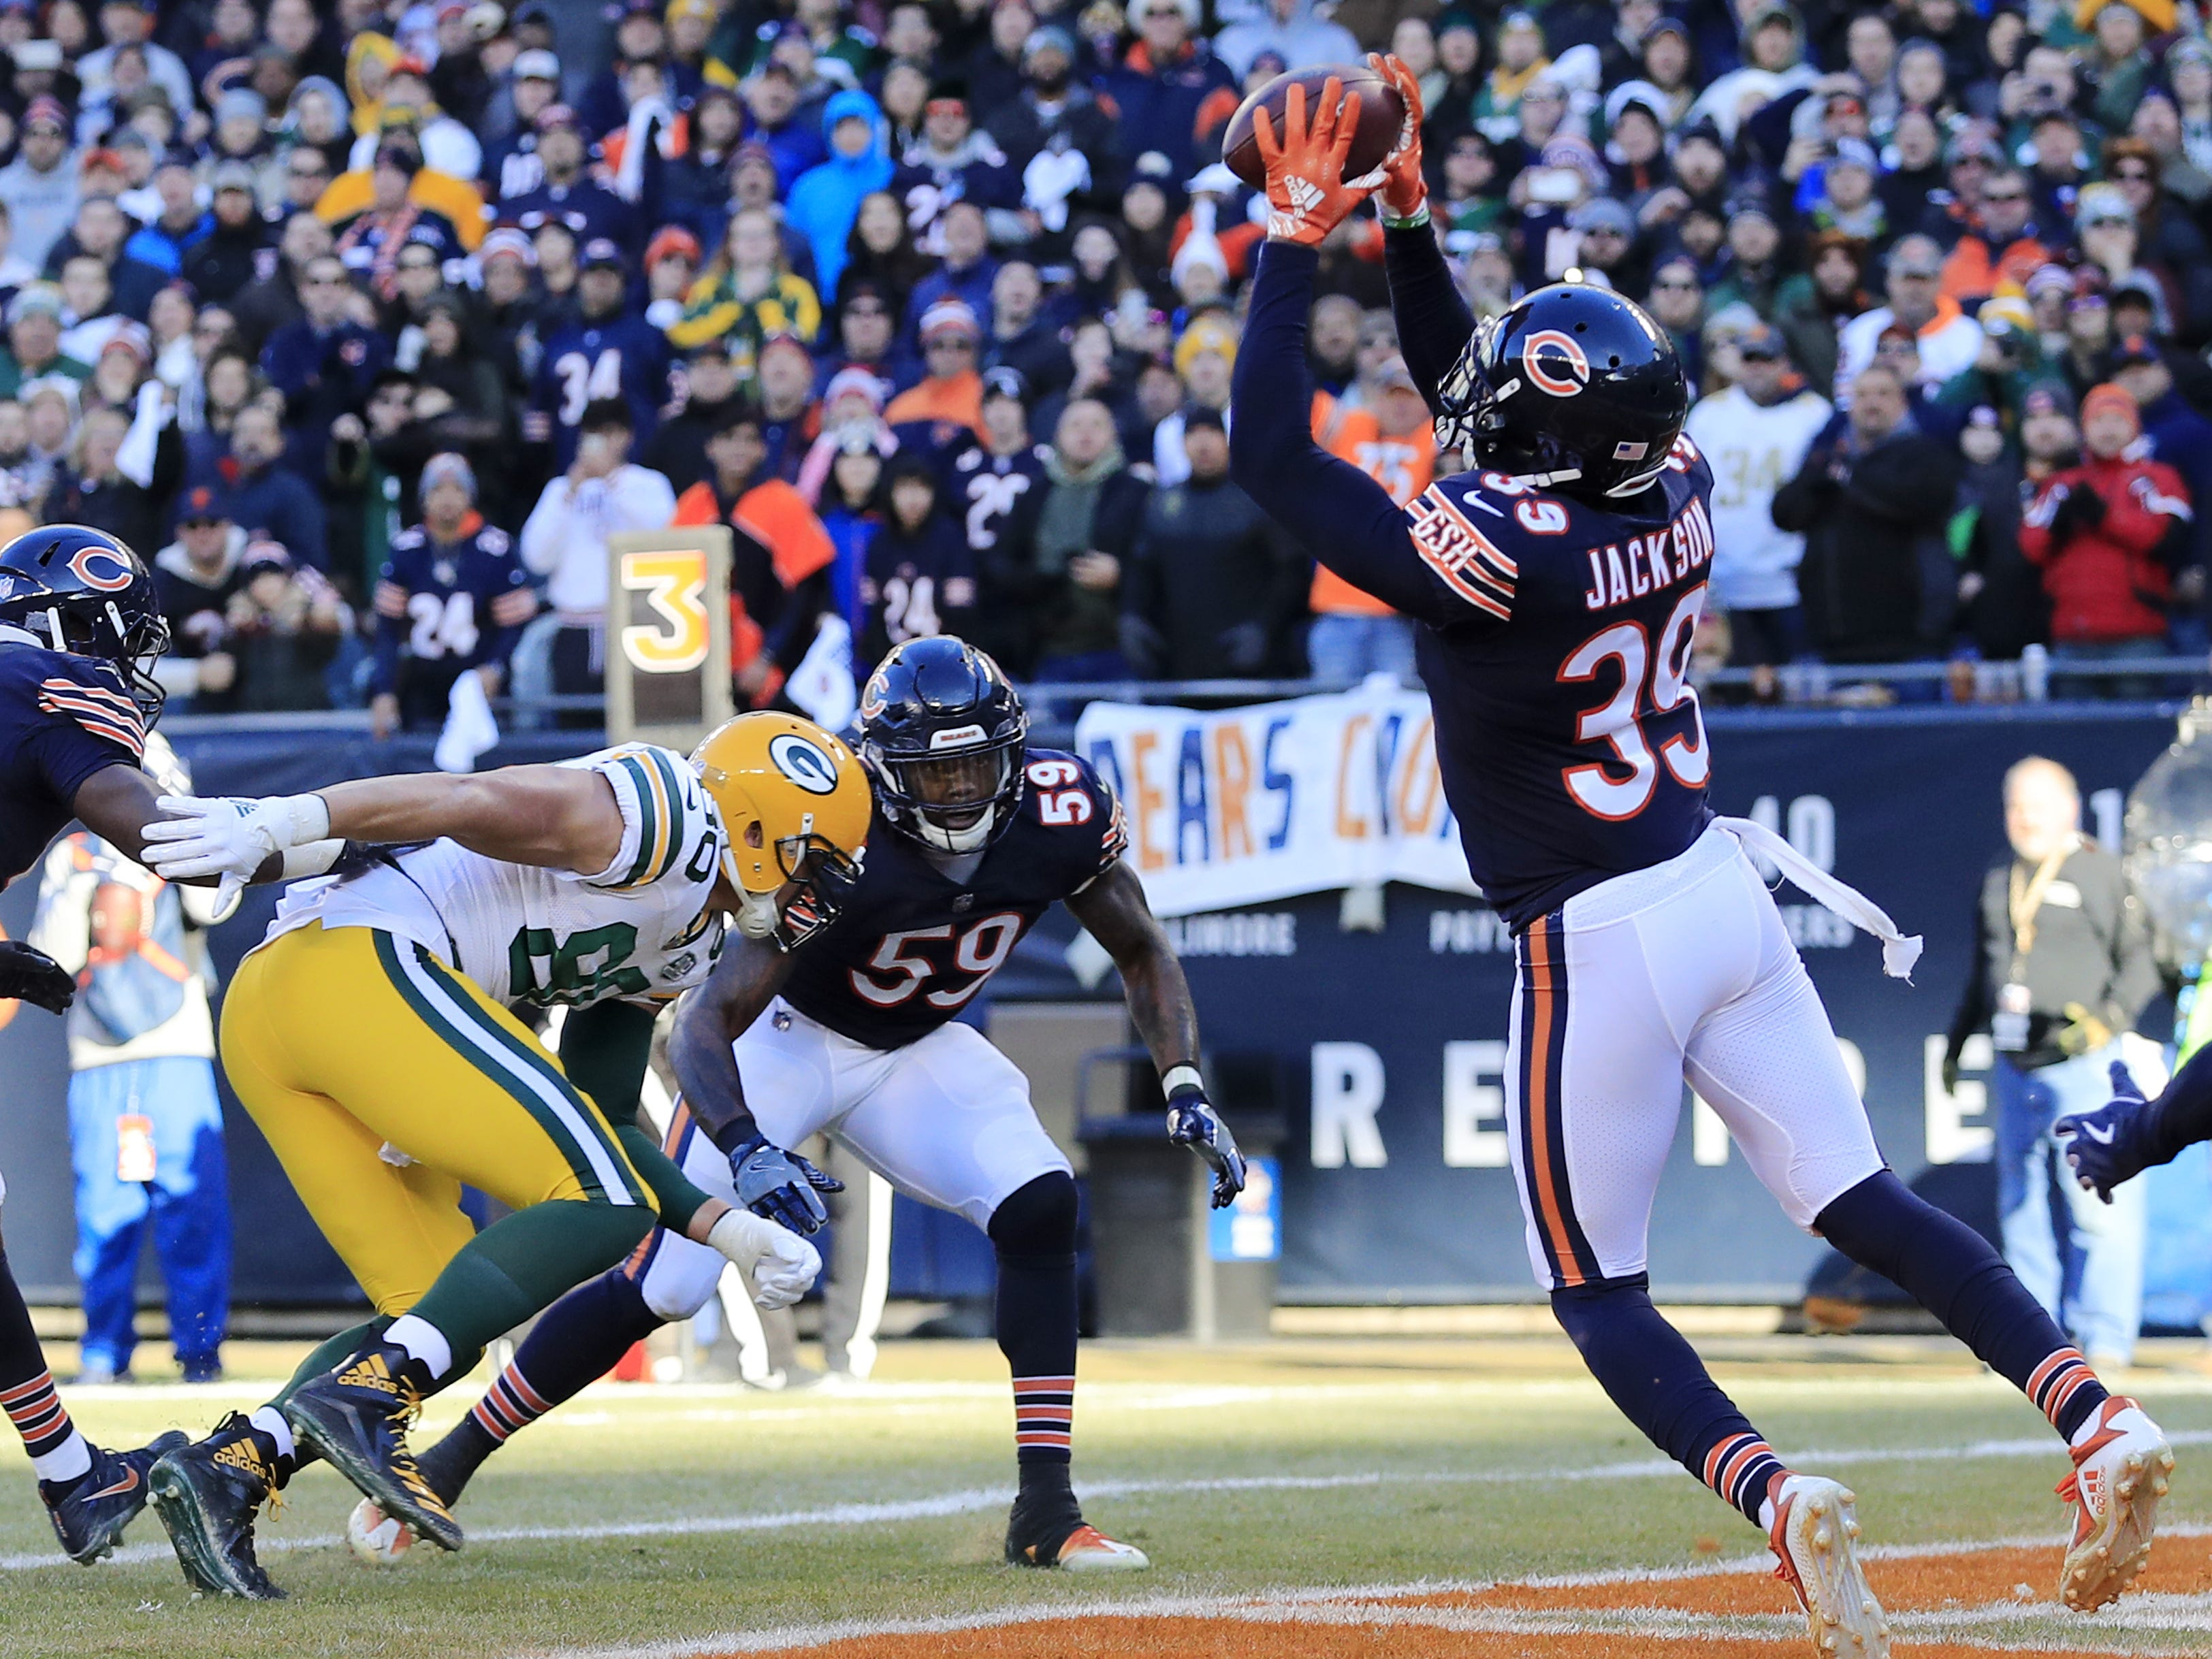 Chicago Bears free safety Eddie Jackson (39) intercepts a pass in the end zone in the fourth quarter against the Green Bay Packers at Soldier Field on Sunday, December 16, 2018 in Chicago, Illinois. Adam Wesley/USA TODAY NETWORK-Wis